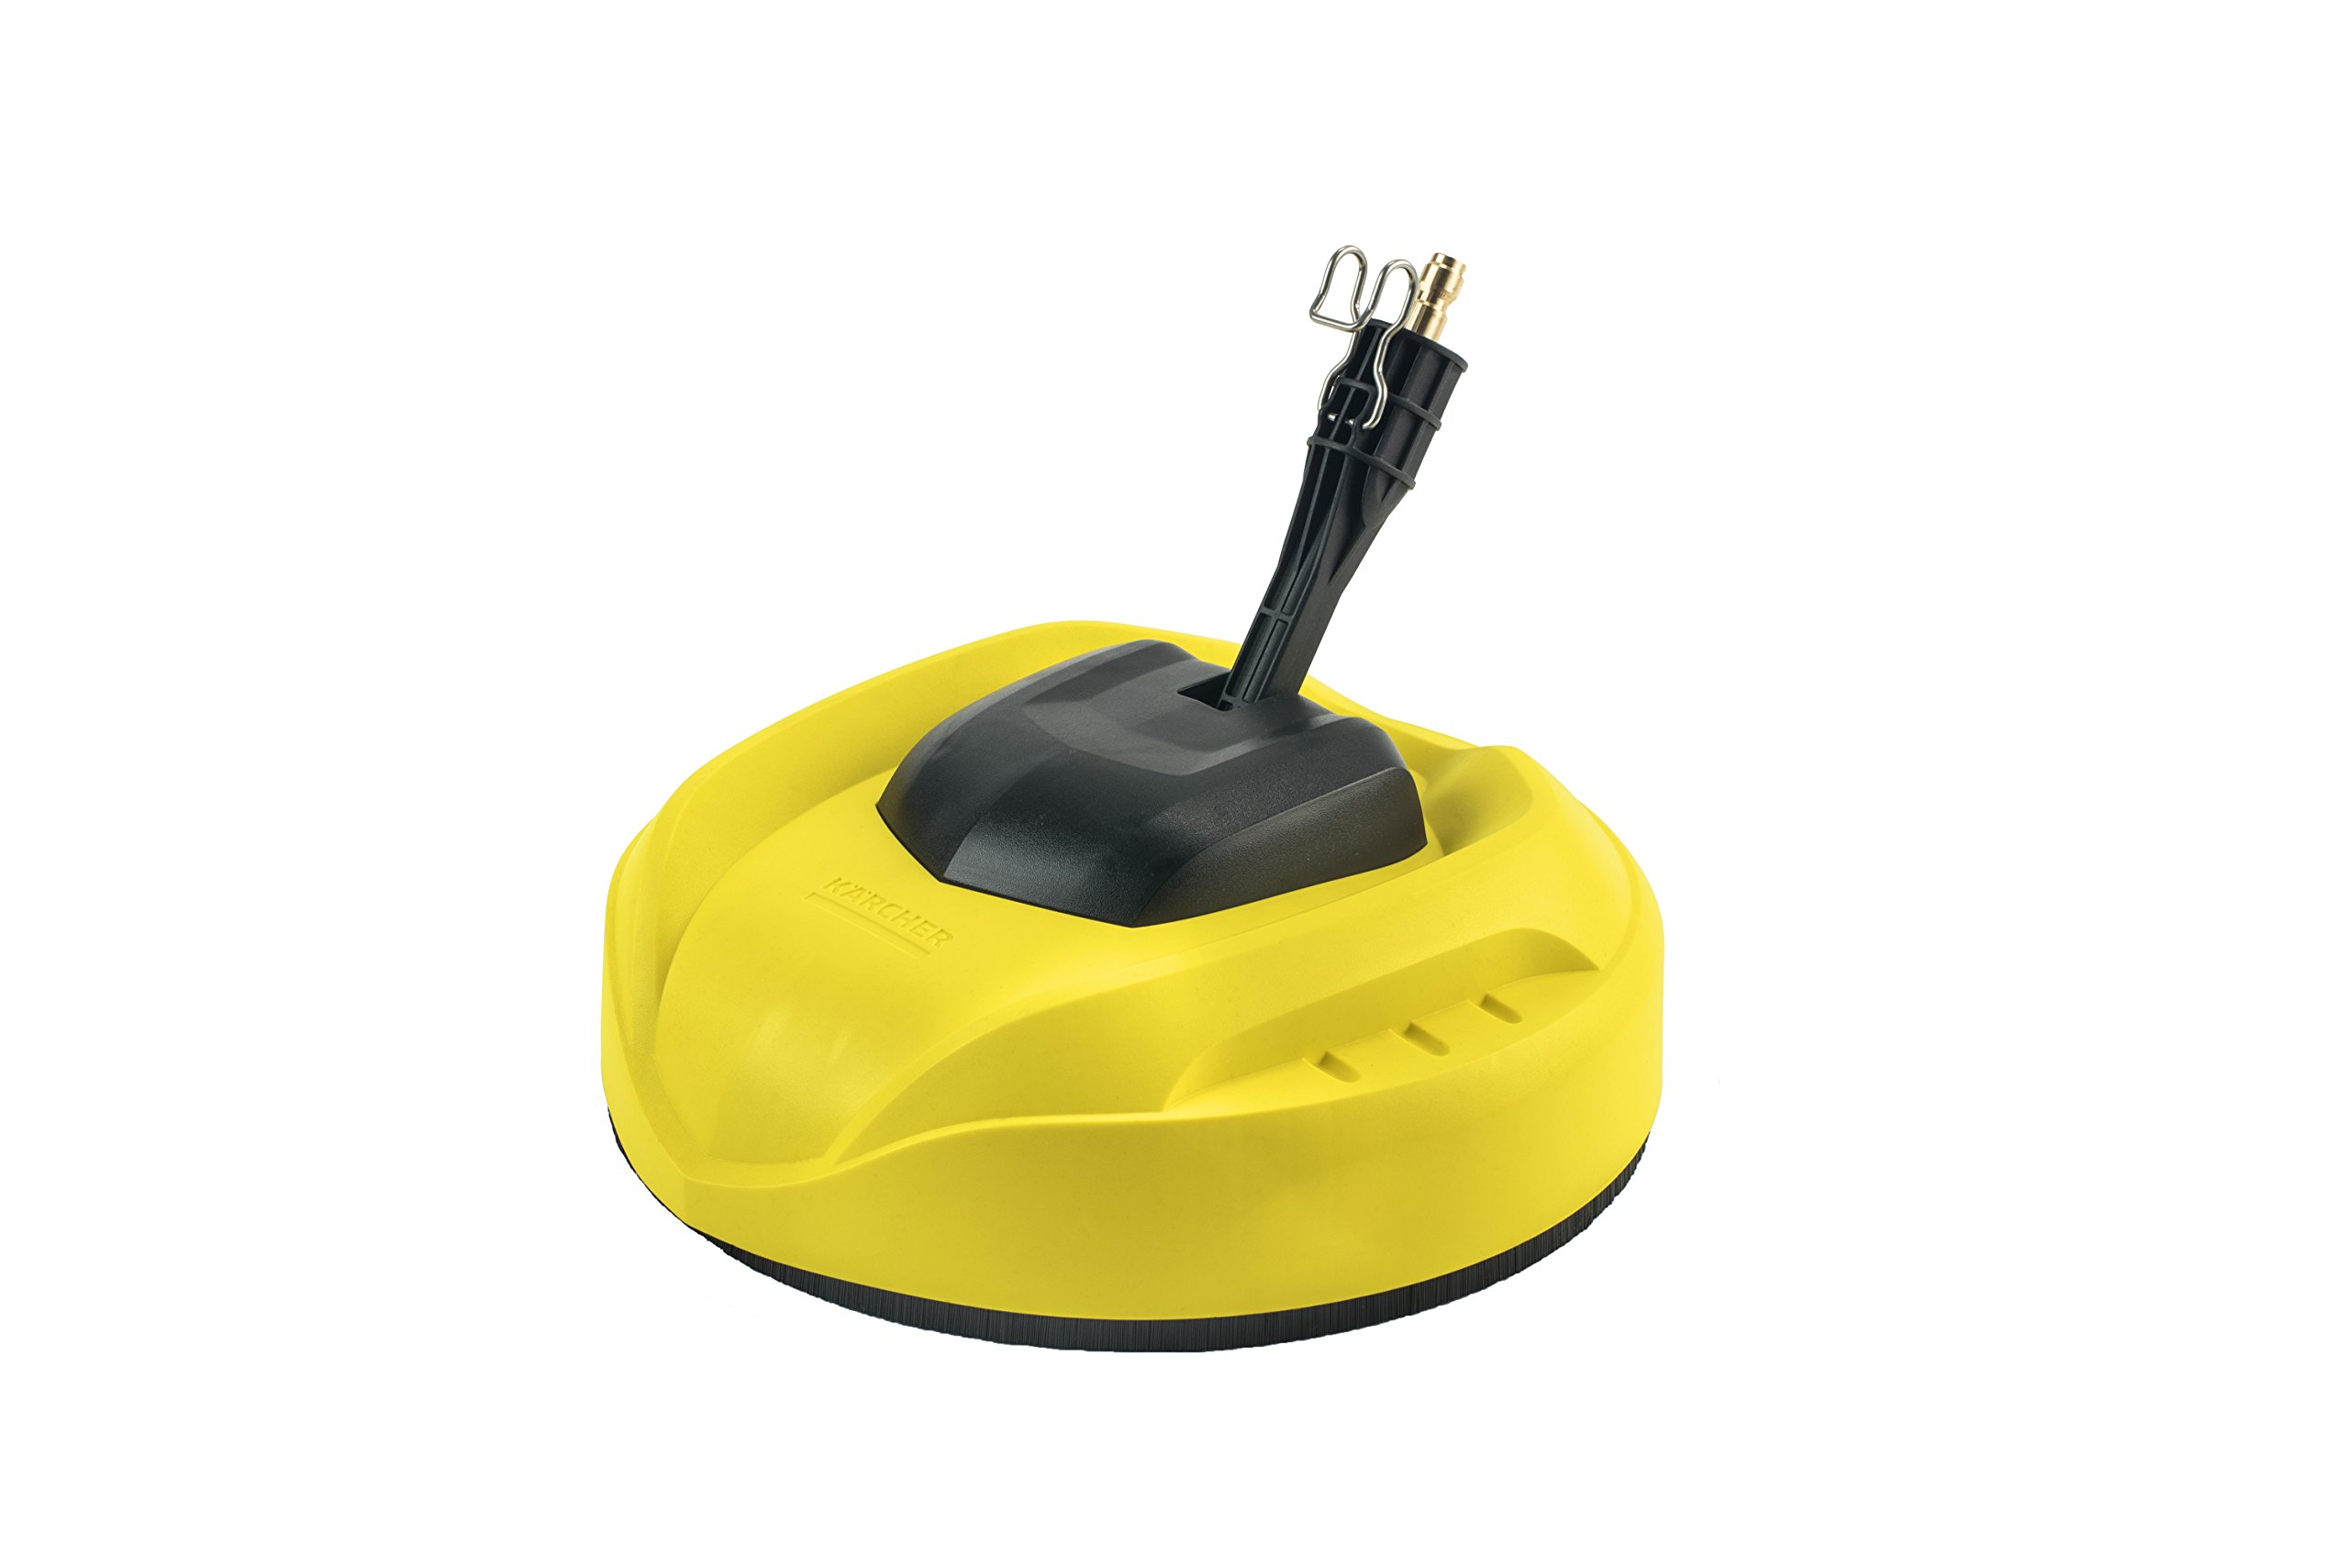 Karcher 8.755-848.0 Hard Surface Cleaner for Electric Pressure Washers, Quick-Connect Fitting